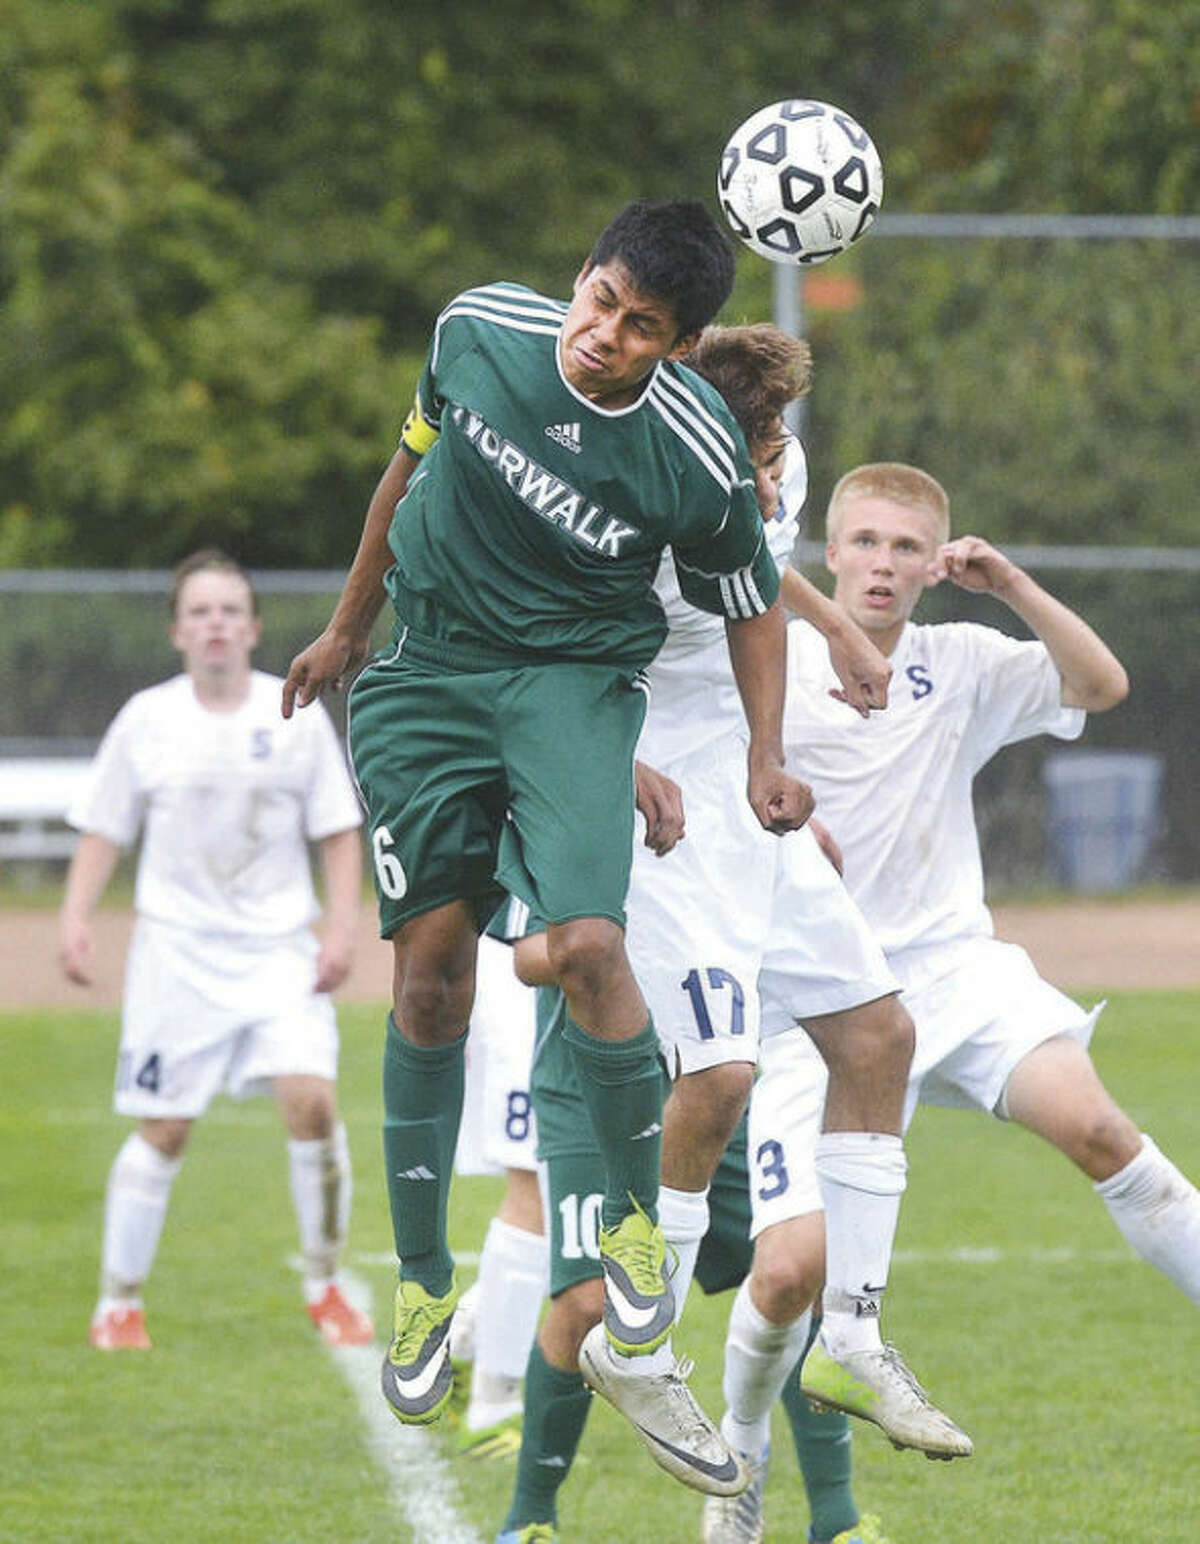 Hour Photo/Alex von Kleydorff Norwalk's Jose Canahui (6) and Staple's James Lewis (17) go for the ball during Thursday's FCIAC boys soccer game in Westport. The host Wreckers posted a 2-0 win over the Bears.